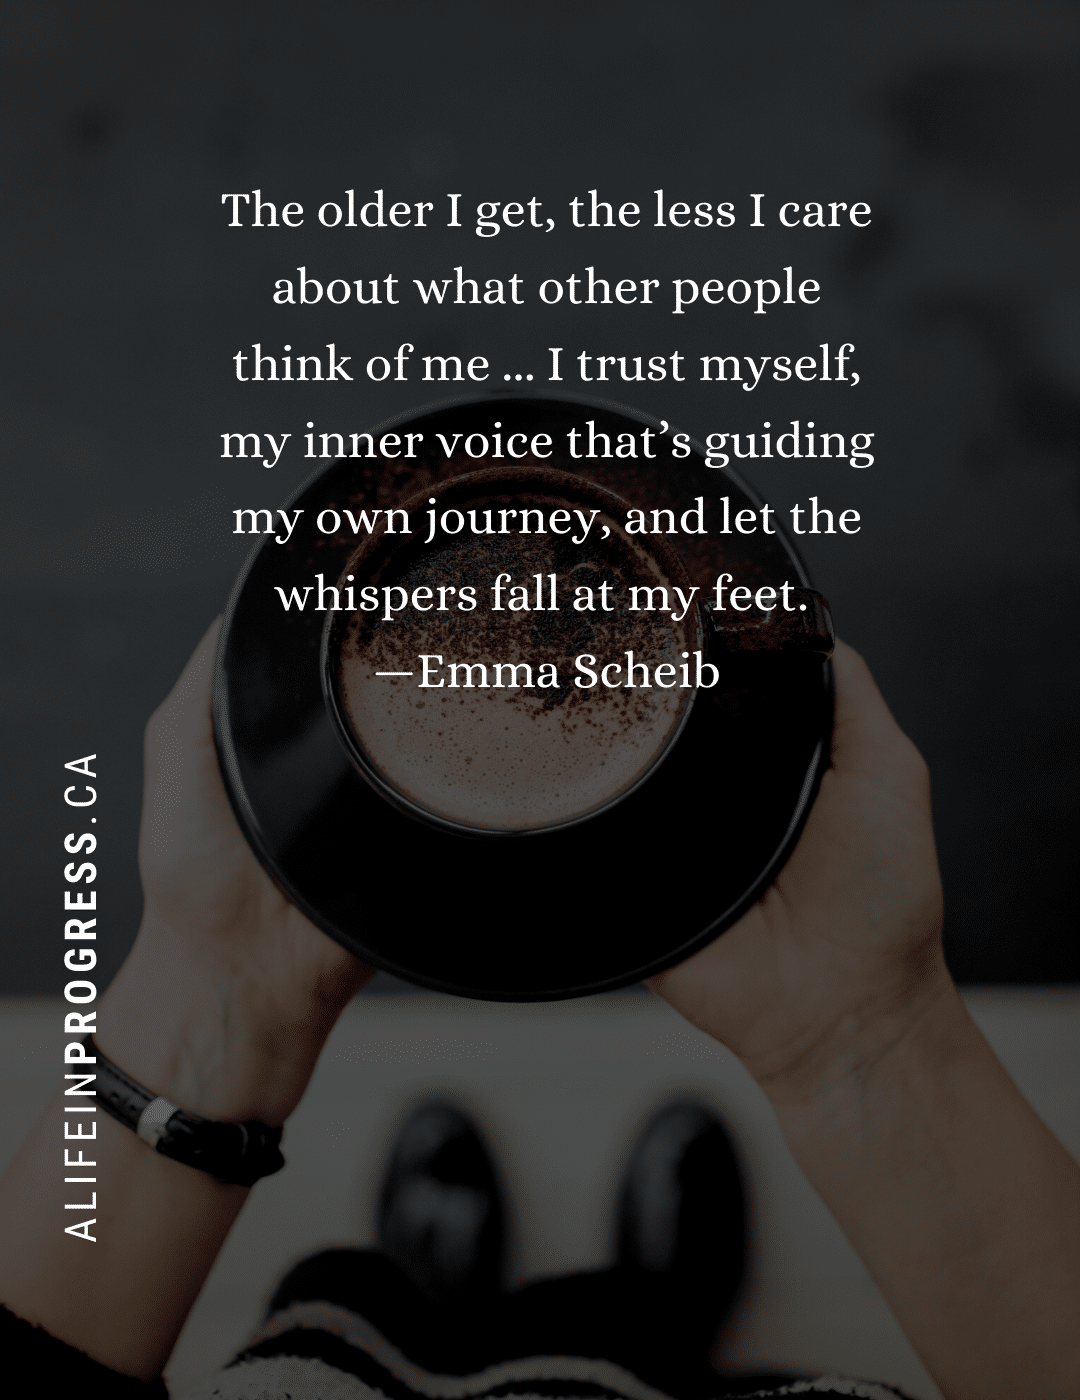 Hands holding a coffee cup with the words: The older I get, the less I care about what other people think of me. I trust myself, my inner voice that's guiding my own journey, and let the whispers fall at my feet. - Emma Scheib